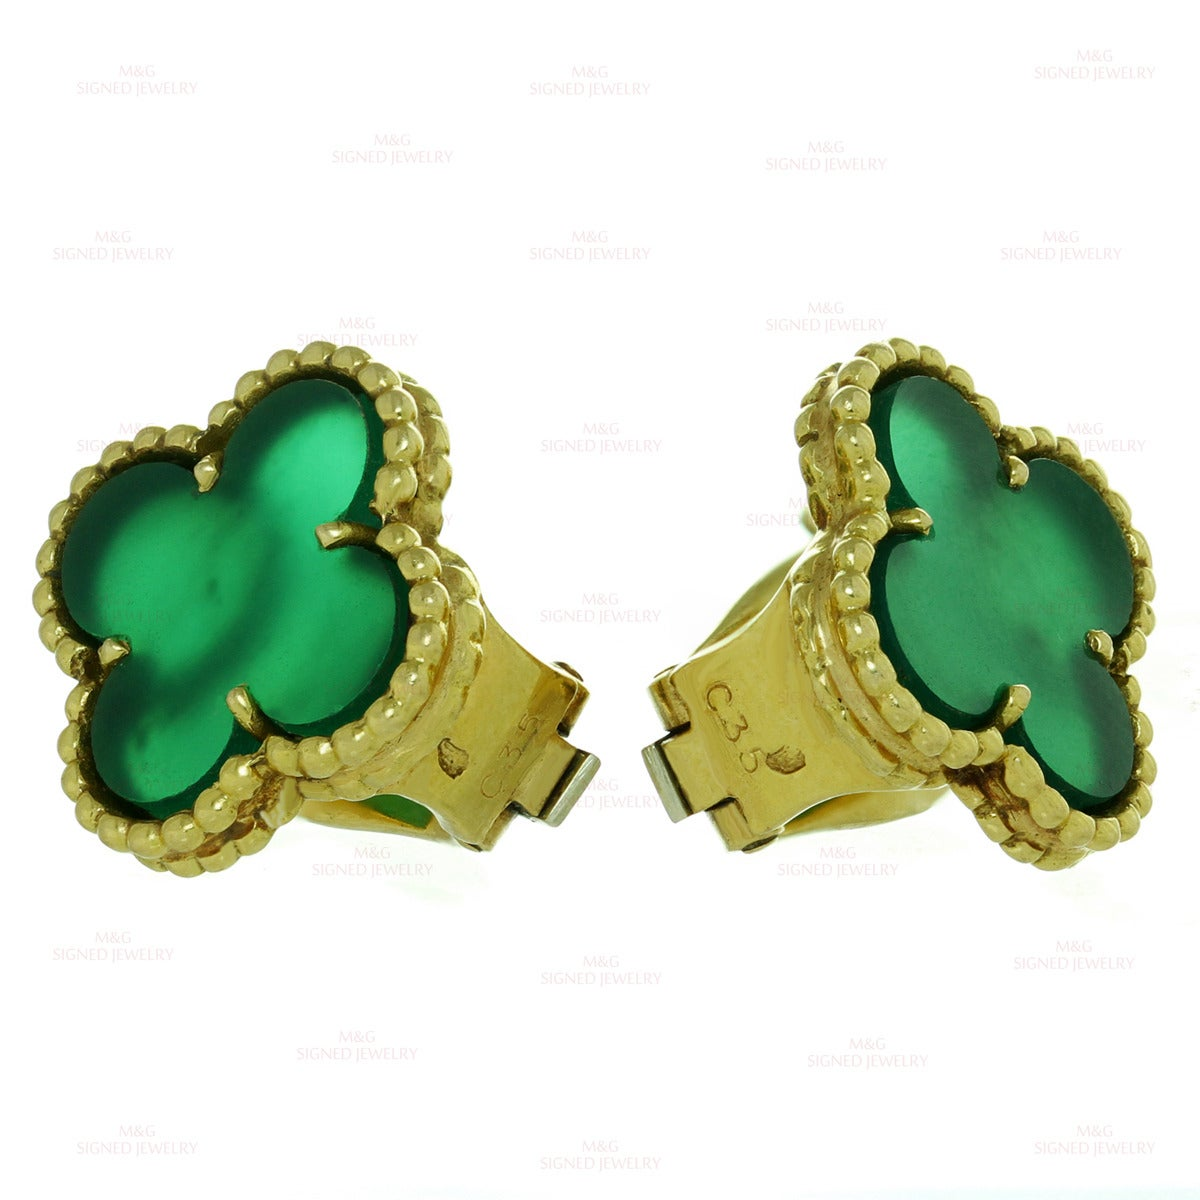 1970s Van Cleef Arpels Alhambra Green Chalcedony Gold Earrings In Good Condition For